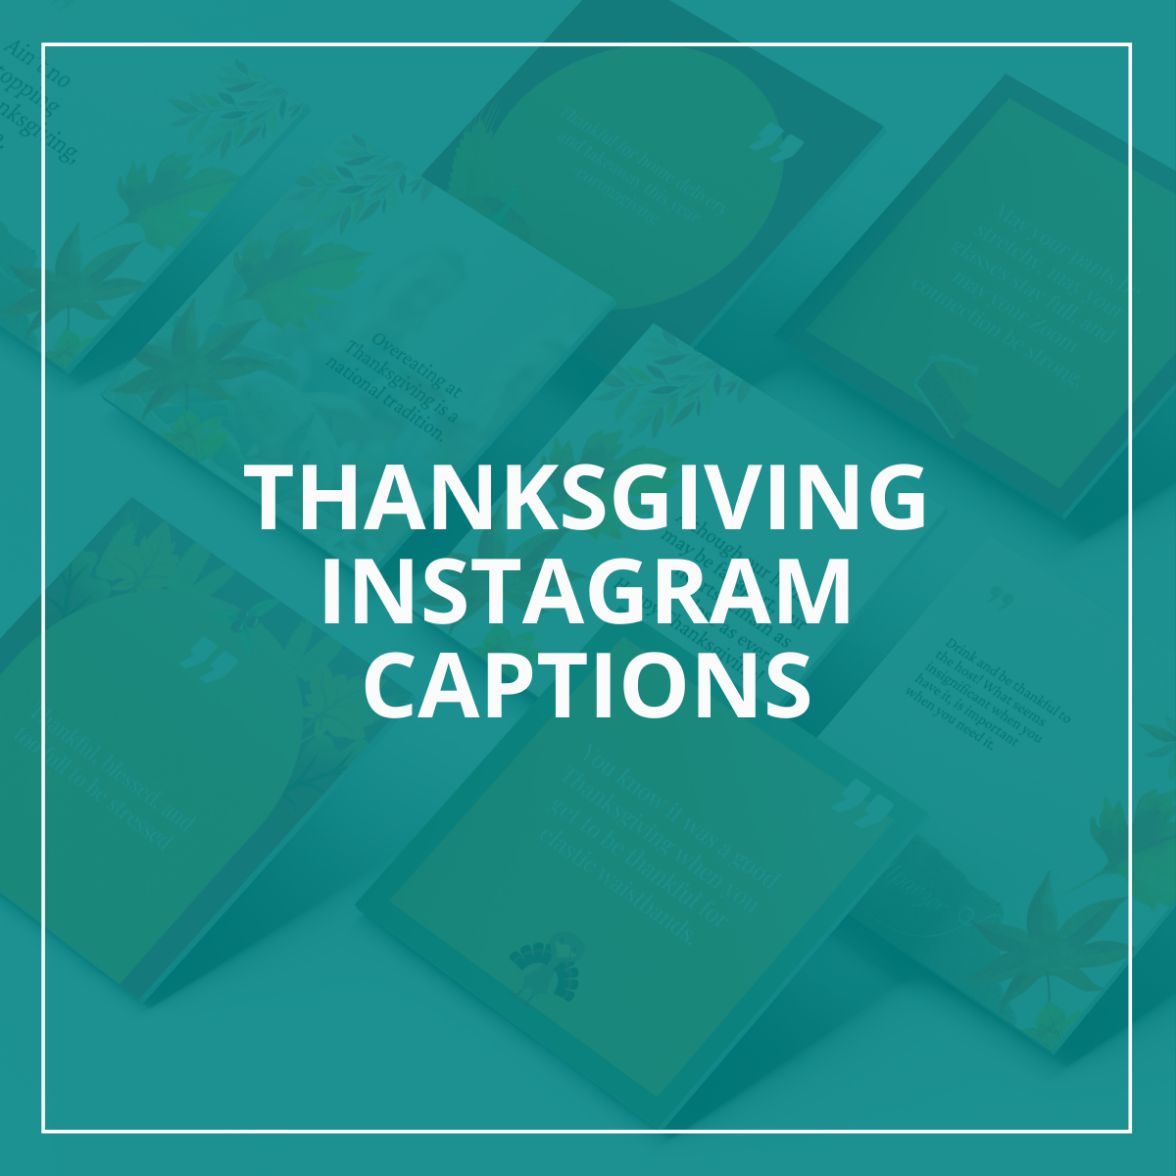 Thanksgiving Instagram Captions